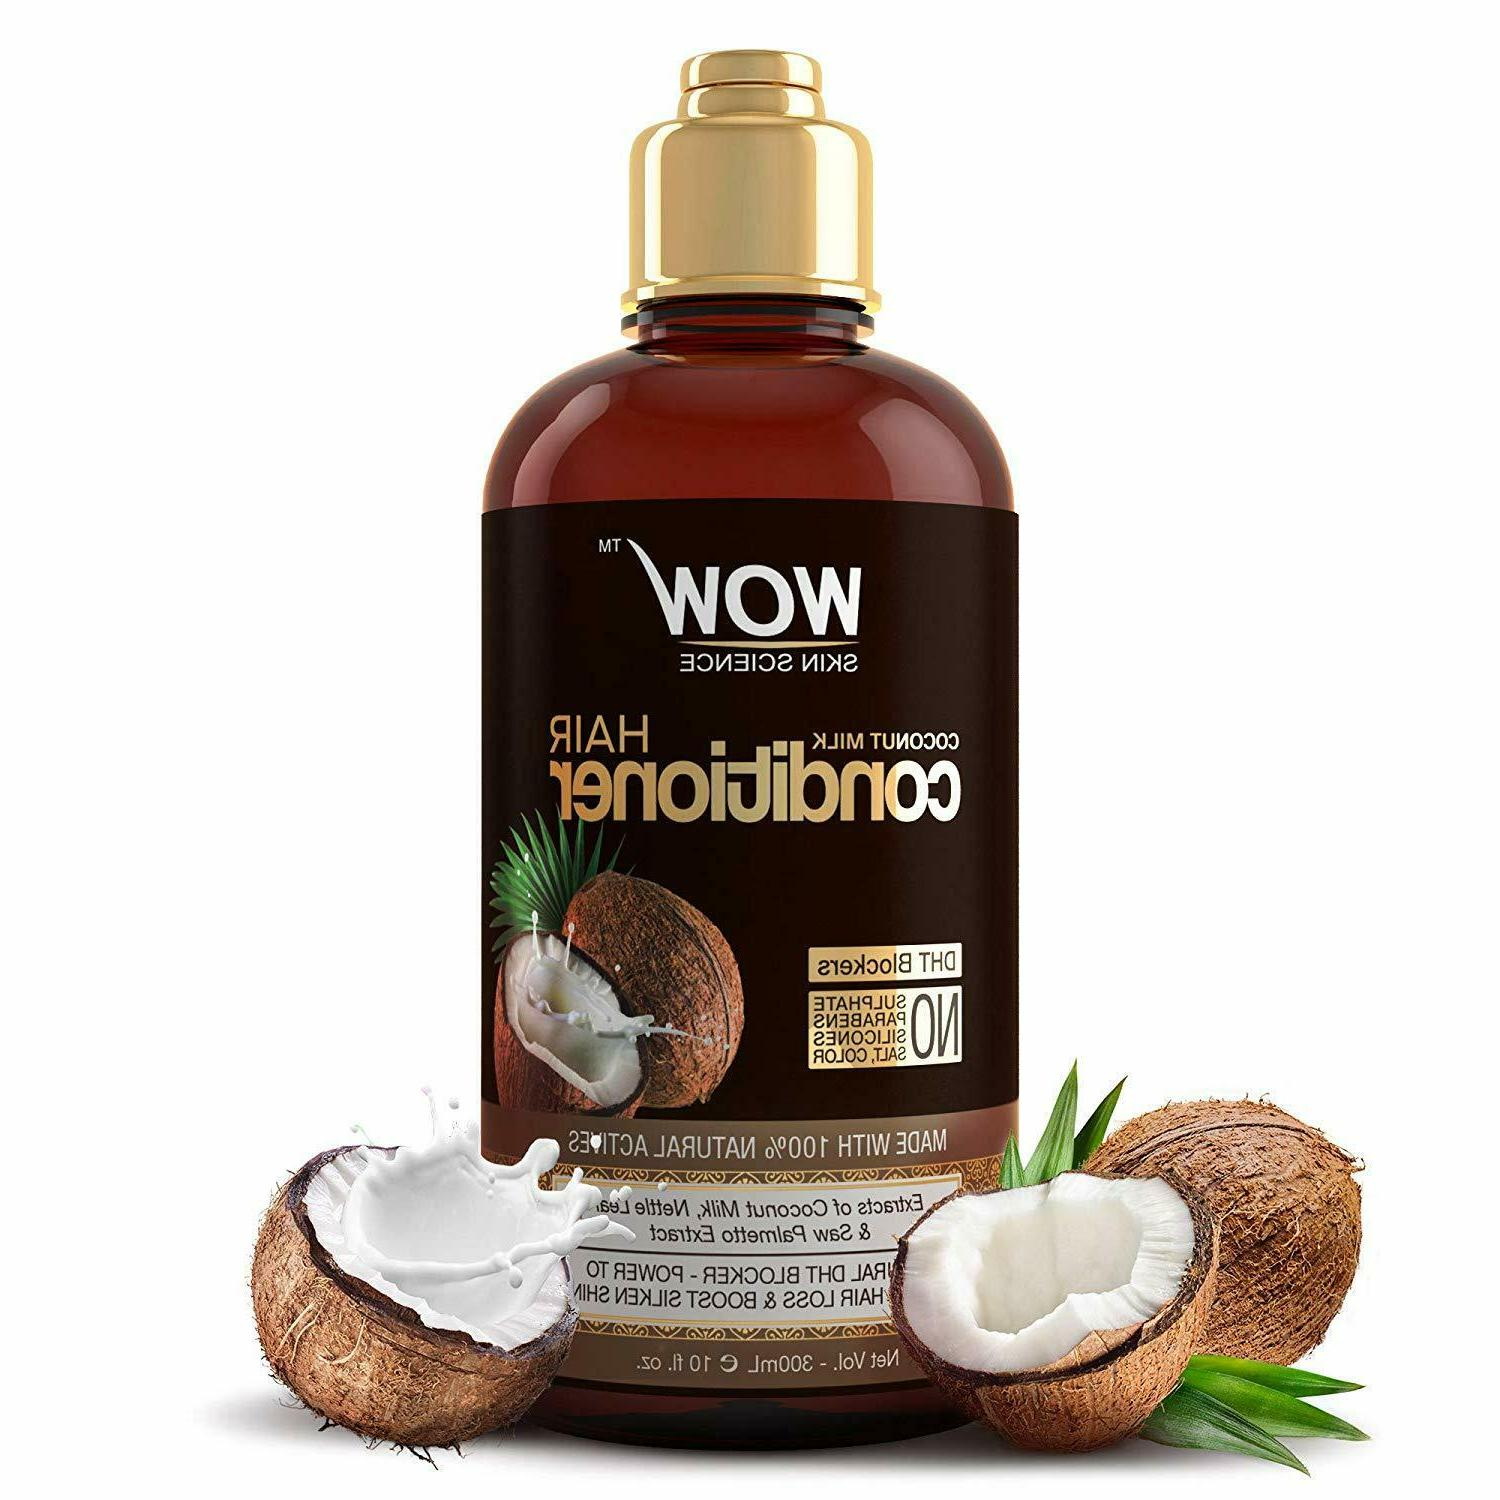 WOW - Hair Products For Men Women